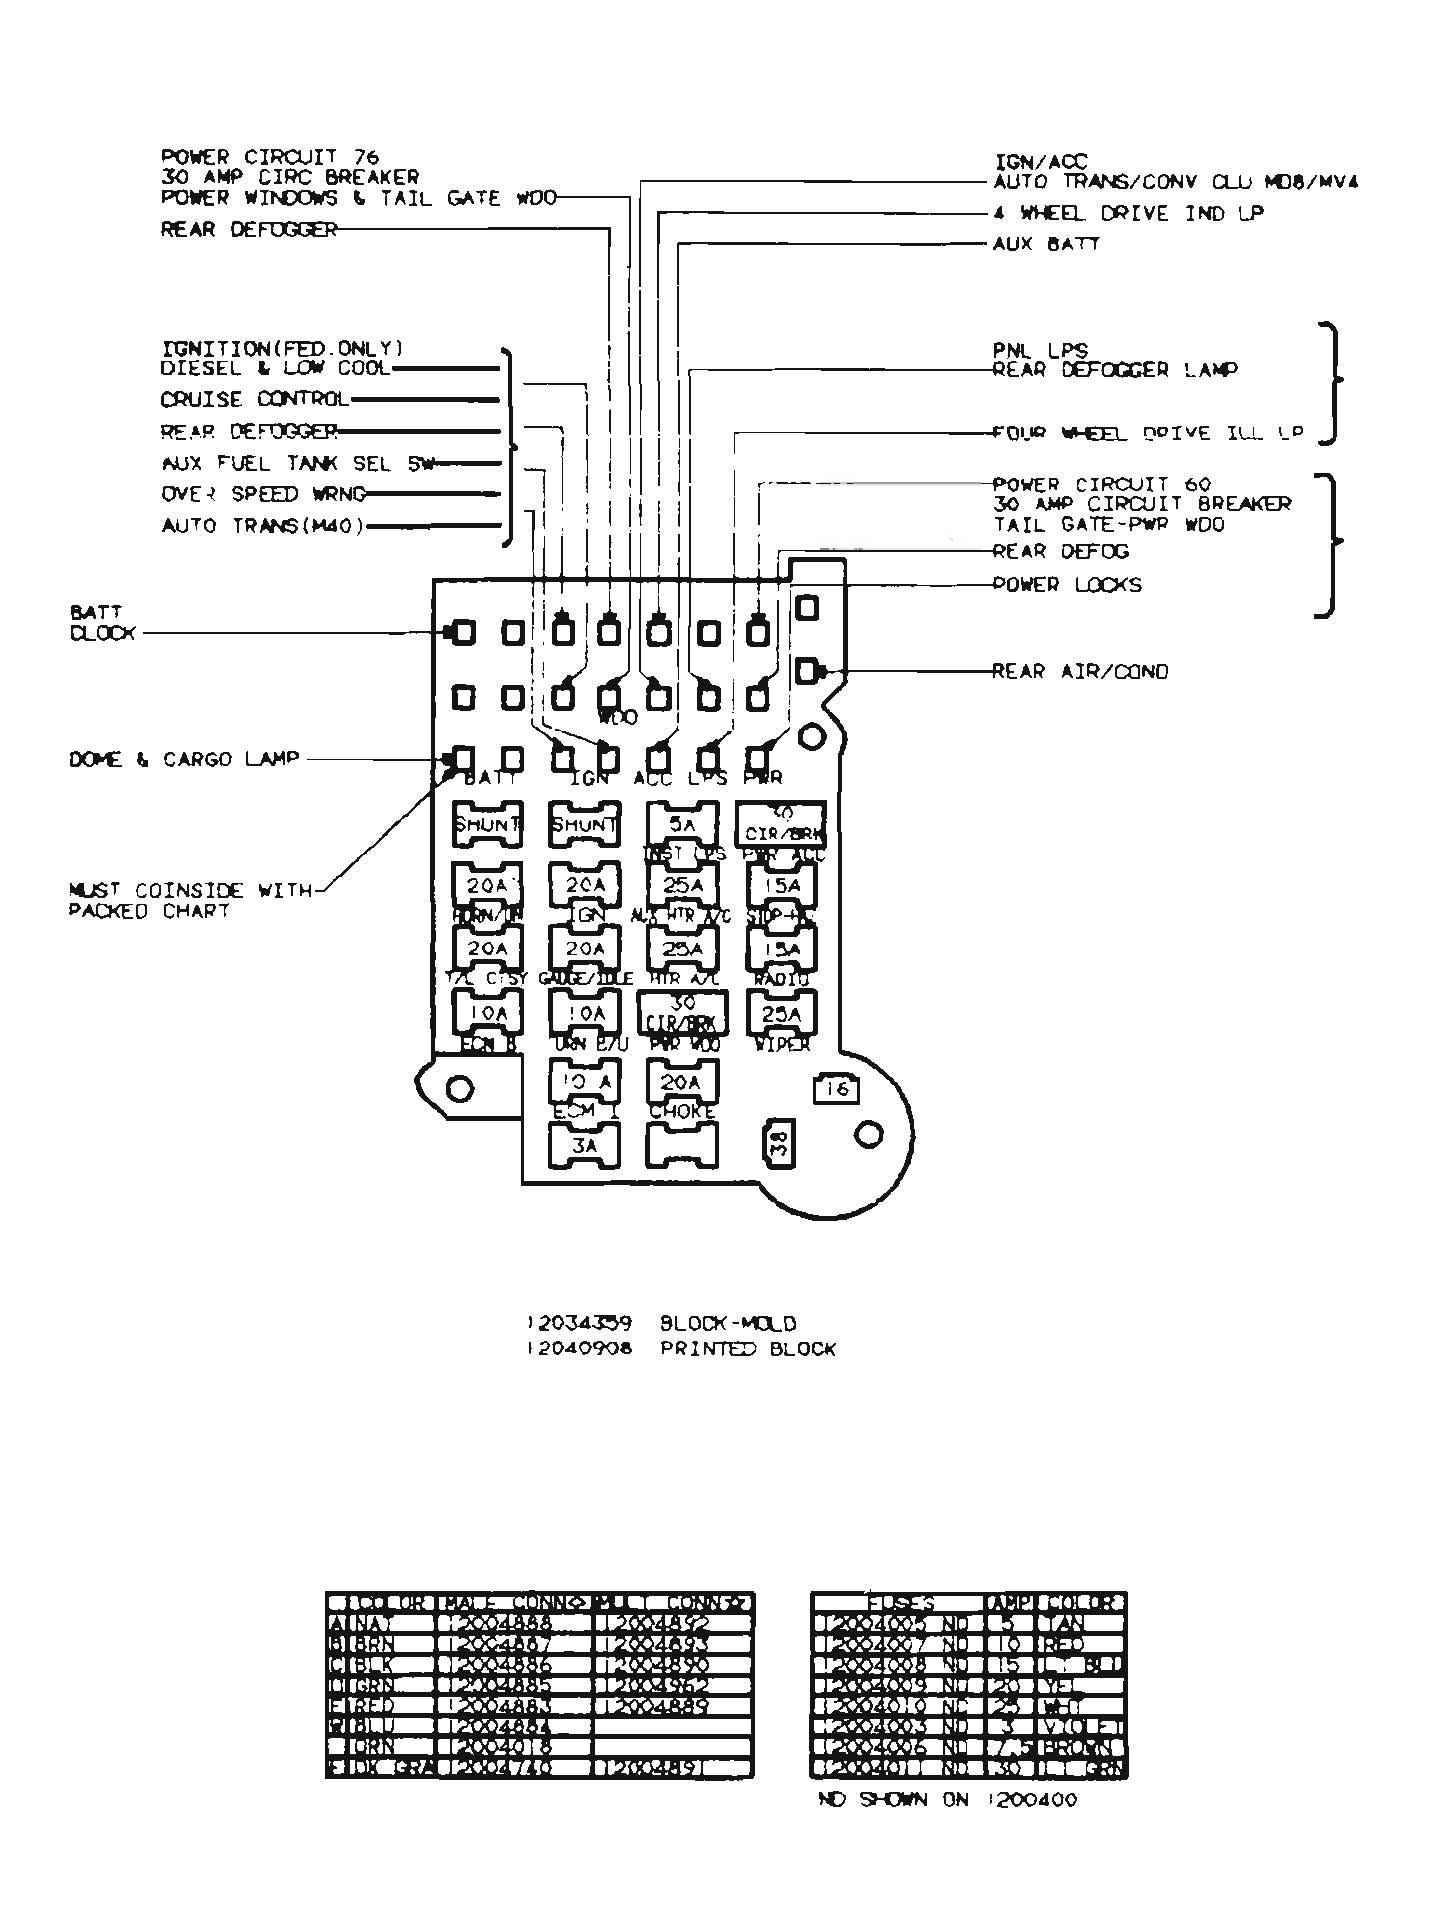 1989 Chevrolet Silverado Fuse Box - 99 Suburban Power Window Wiring Diagram  for Wiring Diagram Schematics